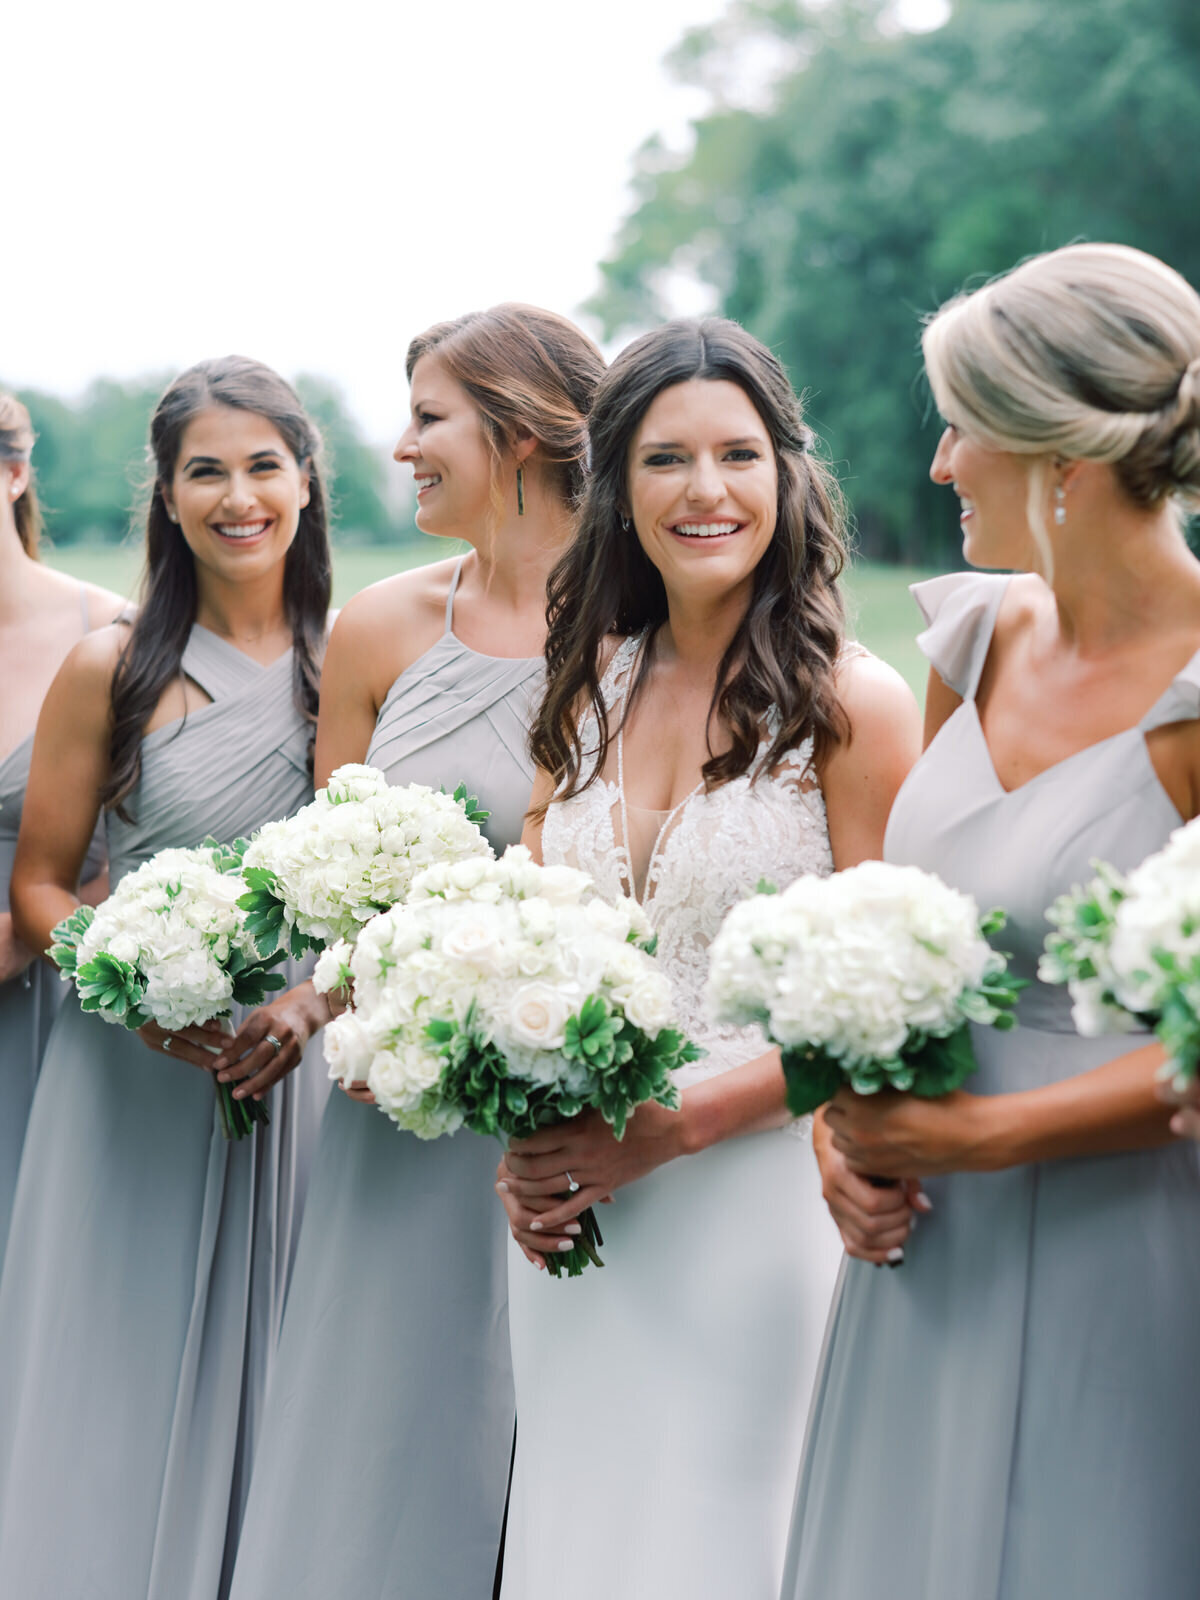 DC wedding photographer photographs an elegant wedding at Smith Mountain Lake.